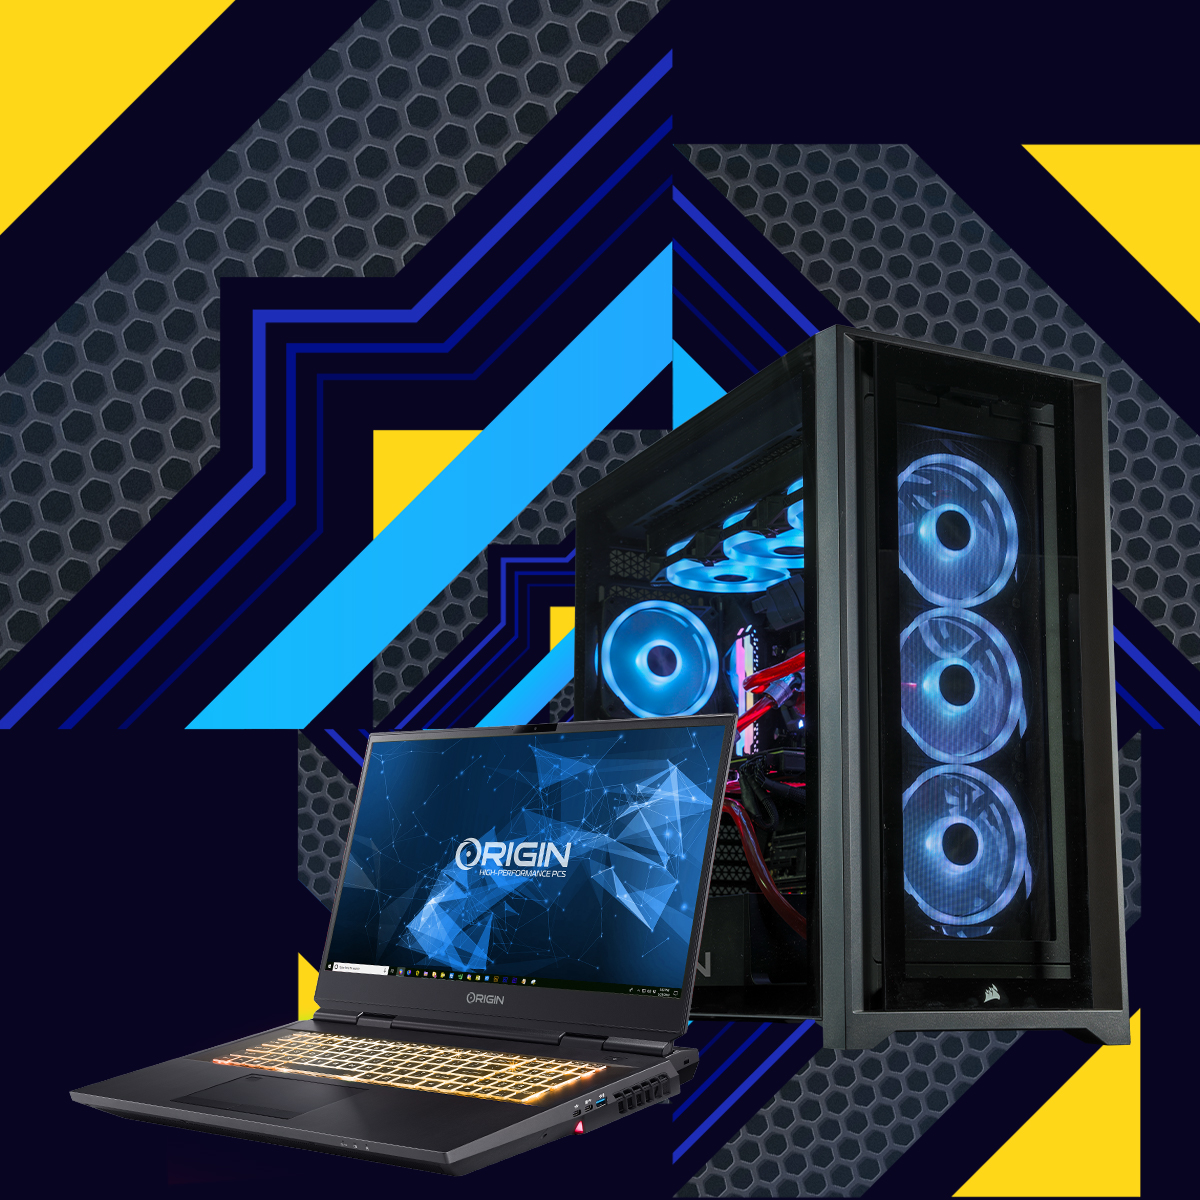 ORIGIN PC MILLENNIUM with Intel Core 11th Gen Processors now available